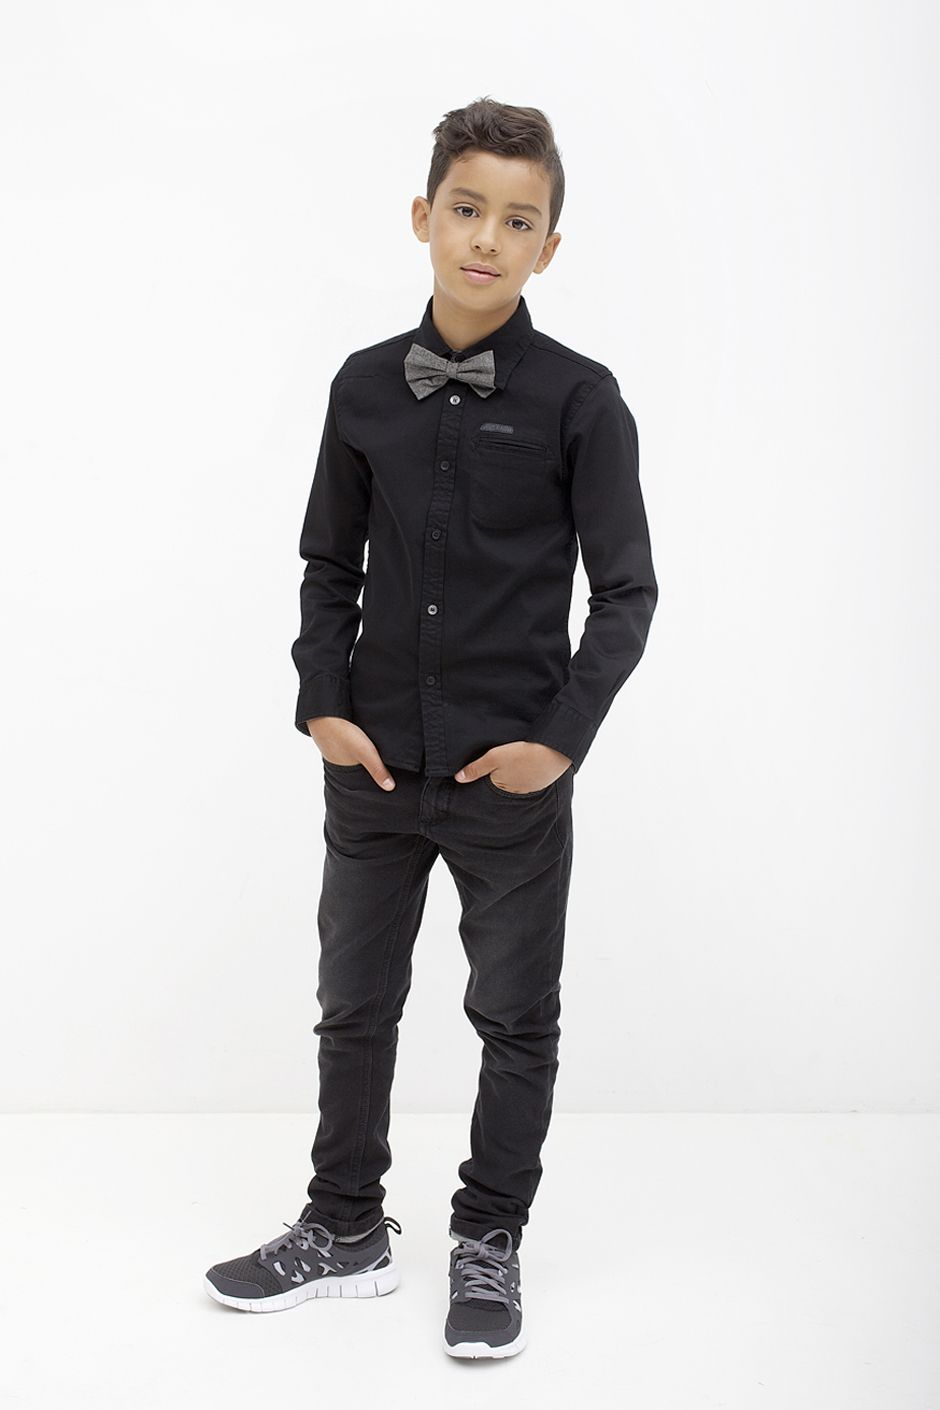 1e66009fe4f8 All black-gray bow tie | Boys 2015 Fashion Inspo | Tween boy outfits ...